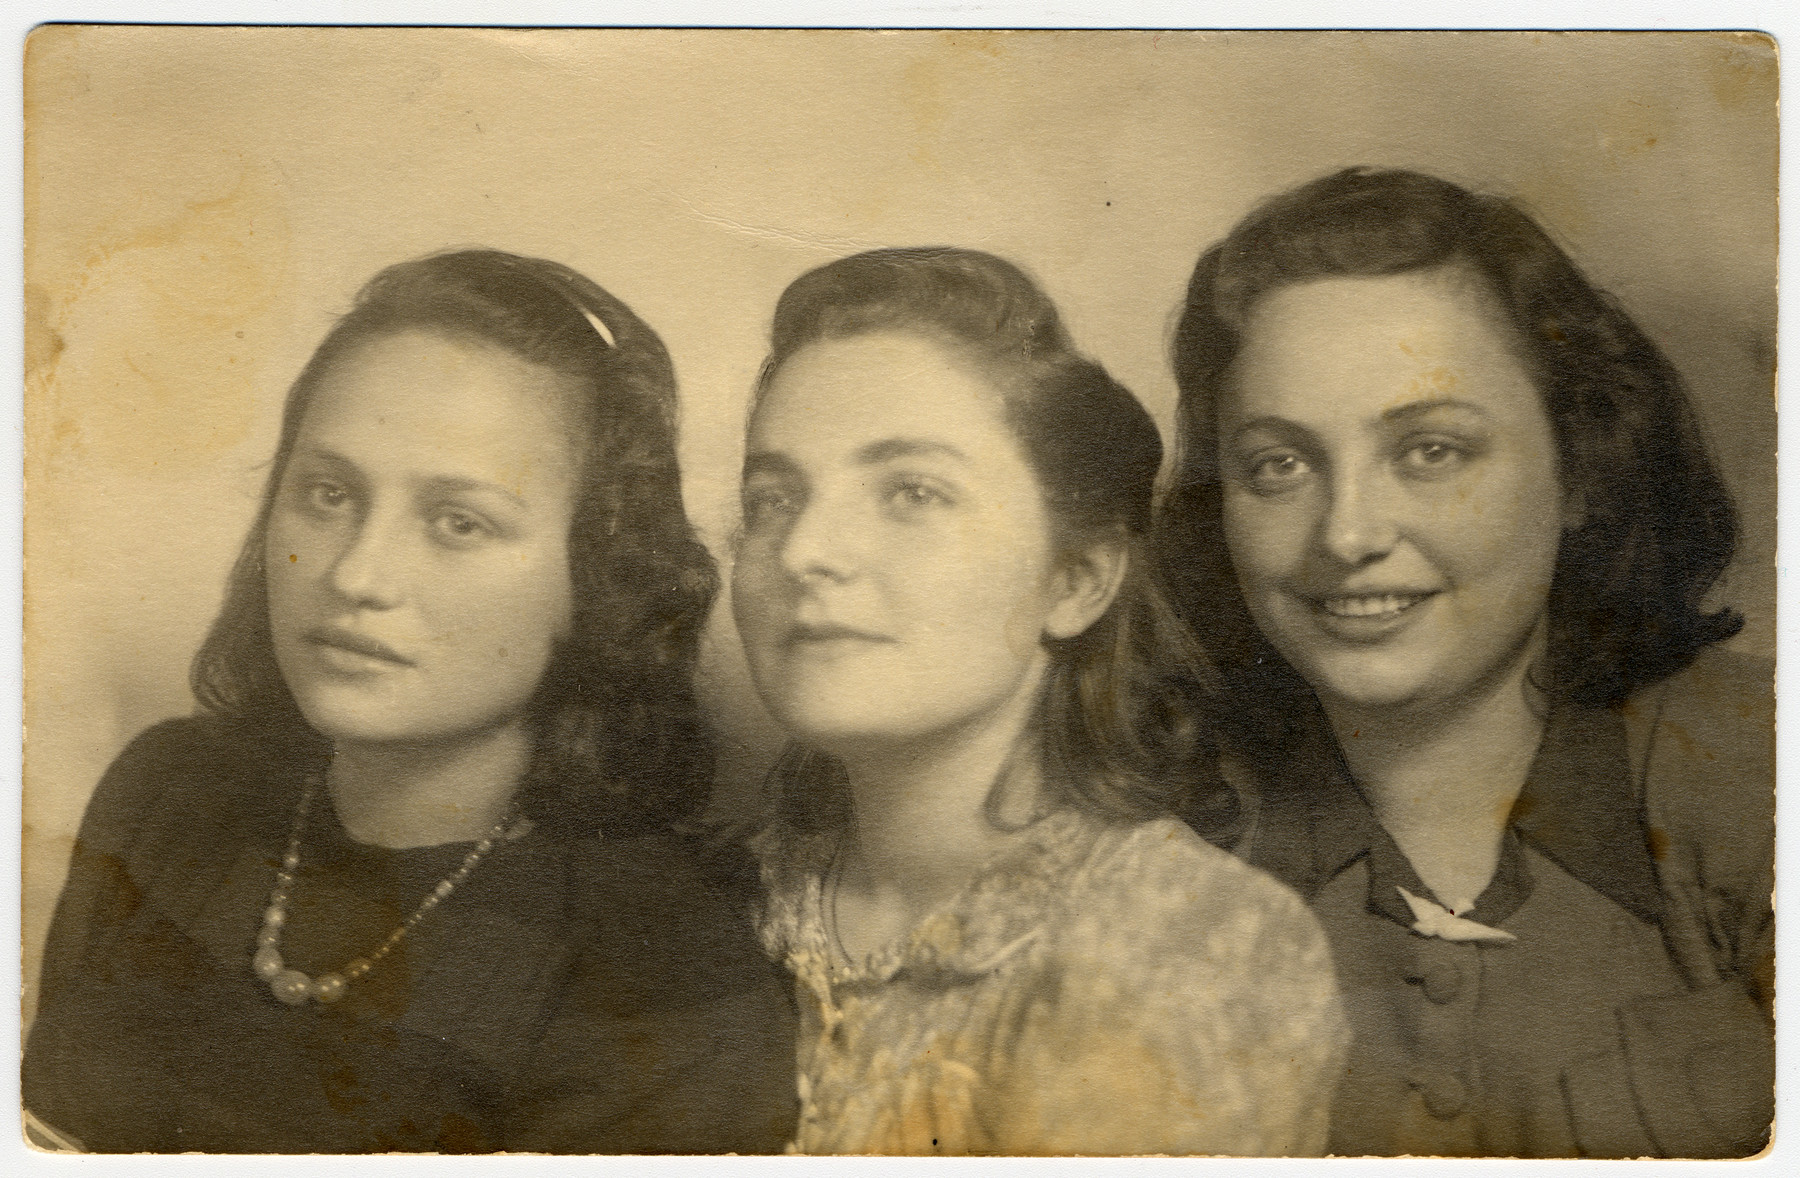 Postwar portrait of three Jewish sisters.  Pictured from left to right are Esther Ass, Chana Chamanovitch (an orphan who was unofficially adopted by the Ass family after the war) and Itke Ass.